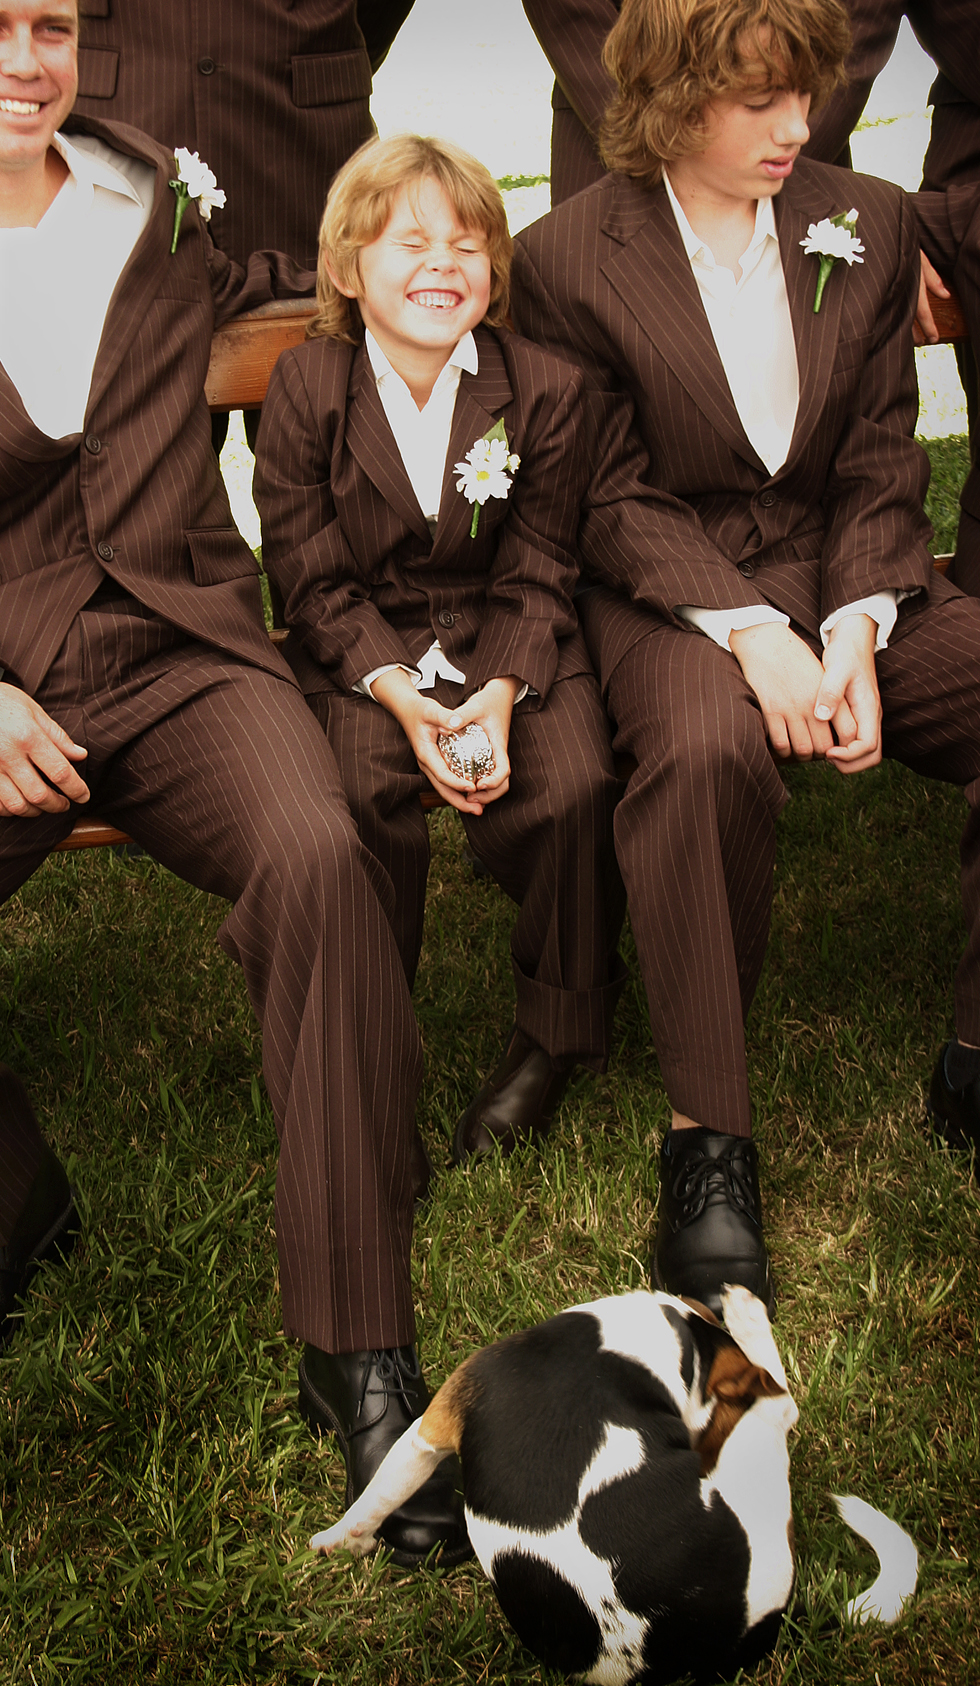 Cute-wedding-photo-misbehaved-wedding-guests.original